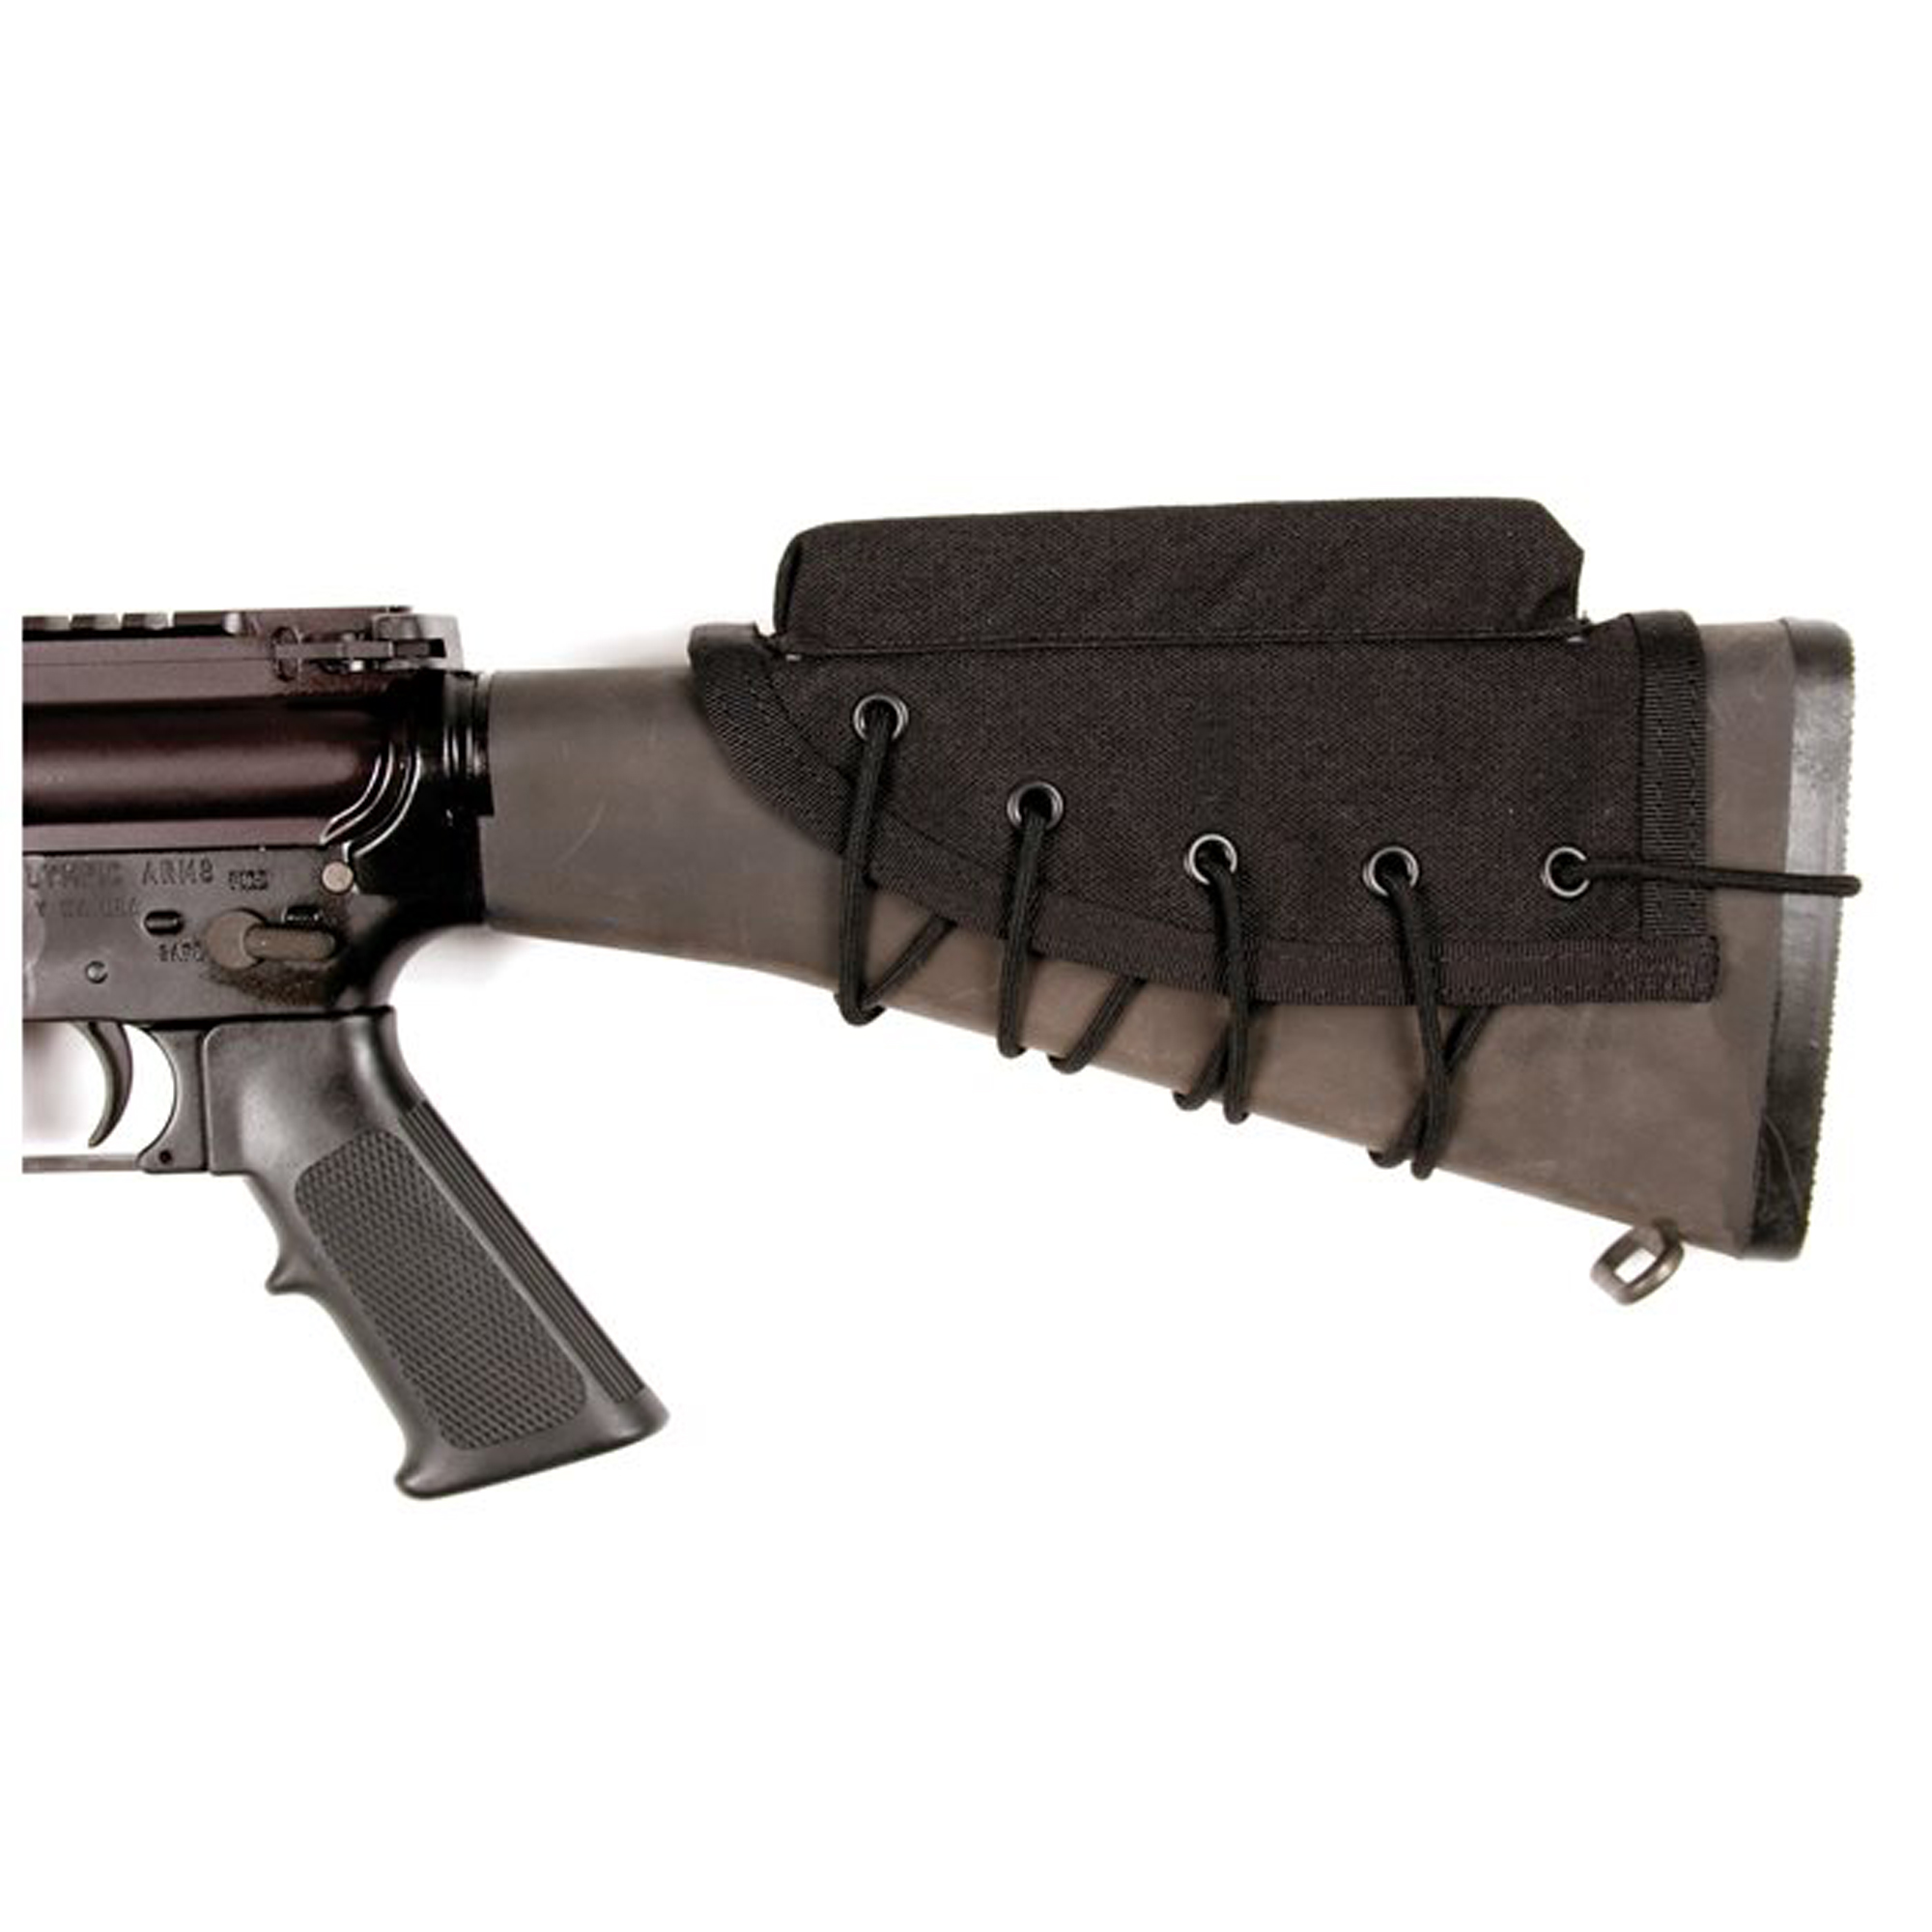 """Blackhawks Rifle Cheek Pad aids eye relief efficiency"""" prevents slipping and reduces recoil to the neck and cheek. It is constructed of 1000 denier nylon and closed-cell foam and has an adjustable tie-down system fits all rifle stocks."""